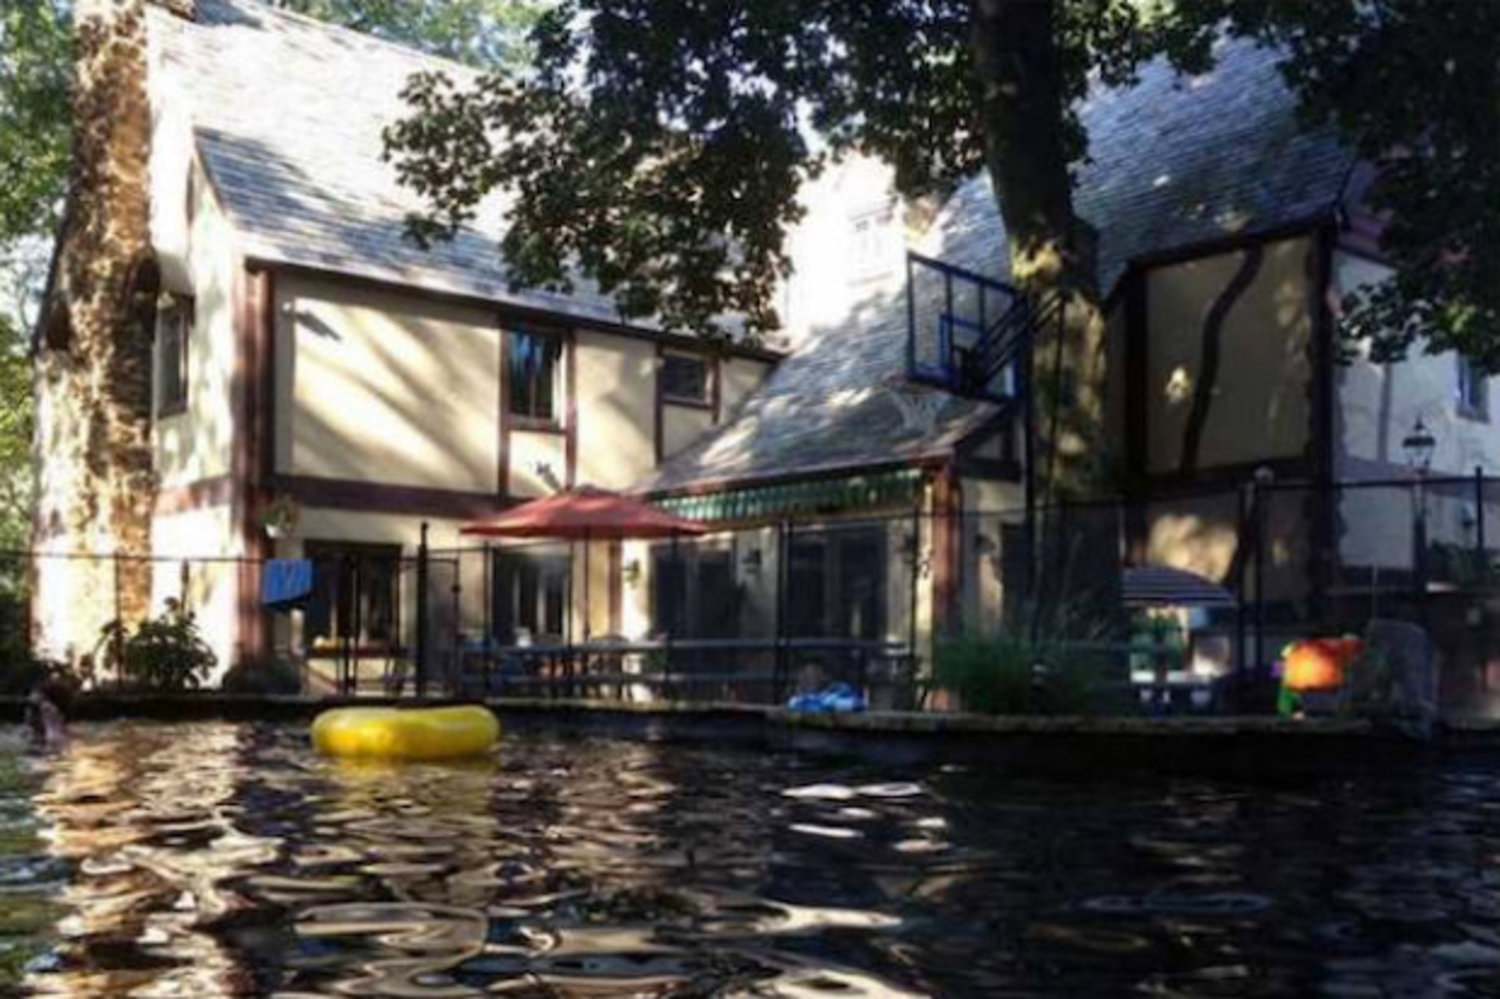 While the exterior of the home remains unchanged since it was used in the film, owners added a saltwater pool to the backyard.